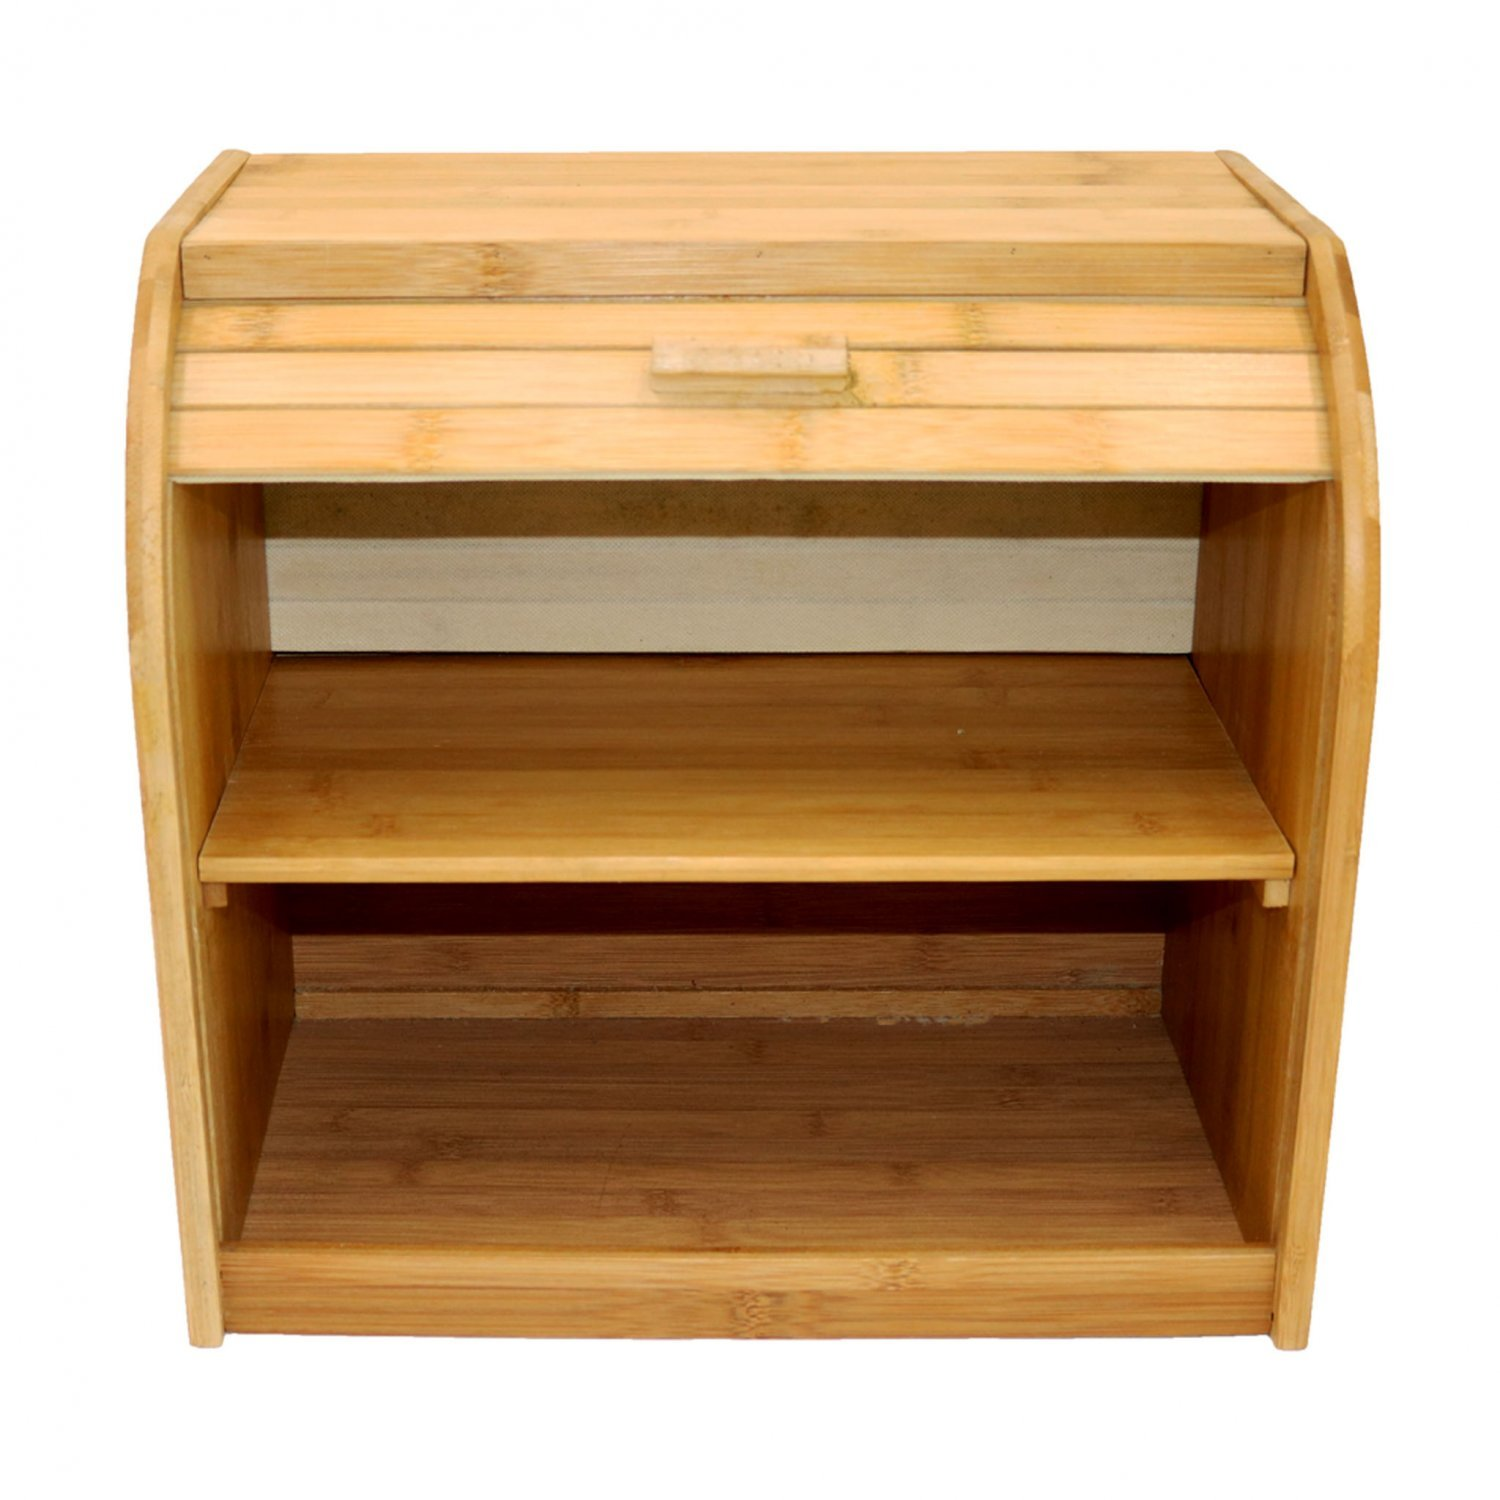 Double Layer Roll Top Bamboo Wooden Bread Bin Kitchen Storage